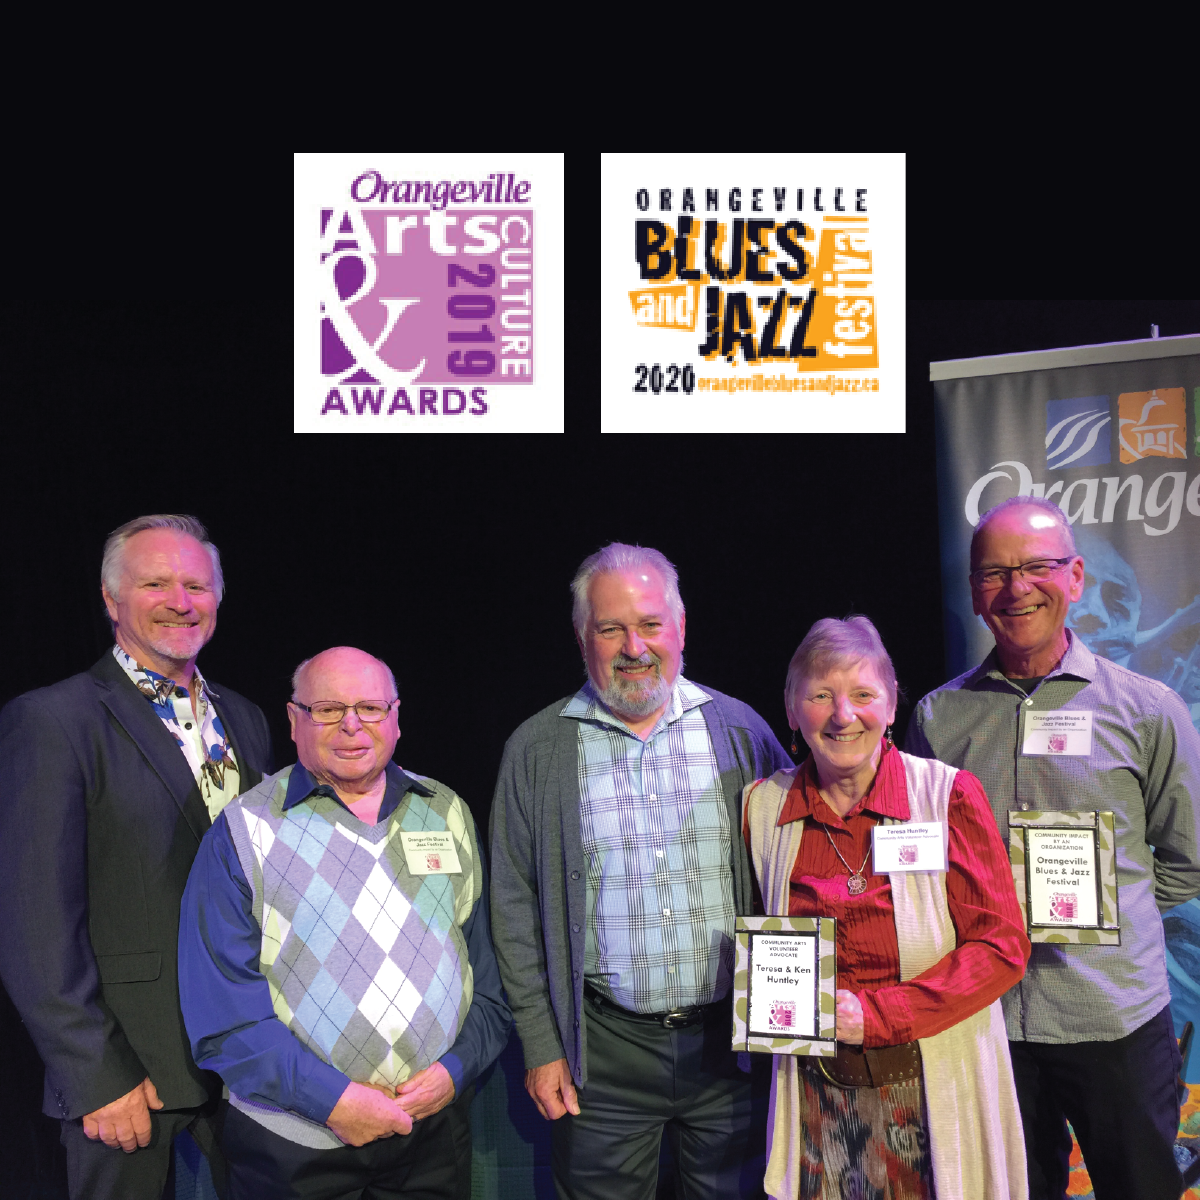 You are currently viewing Orangeville Blues & Jazz Festival and Teresa & Ken Huntley Receive Awards